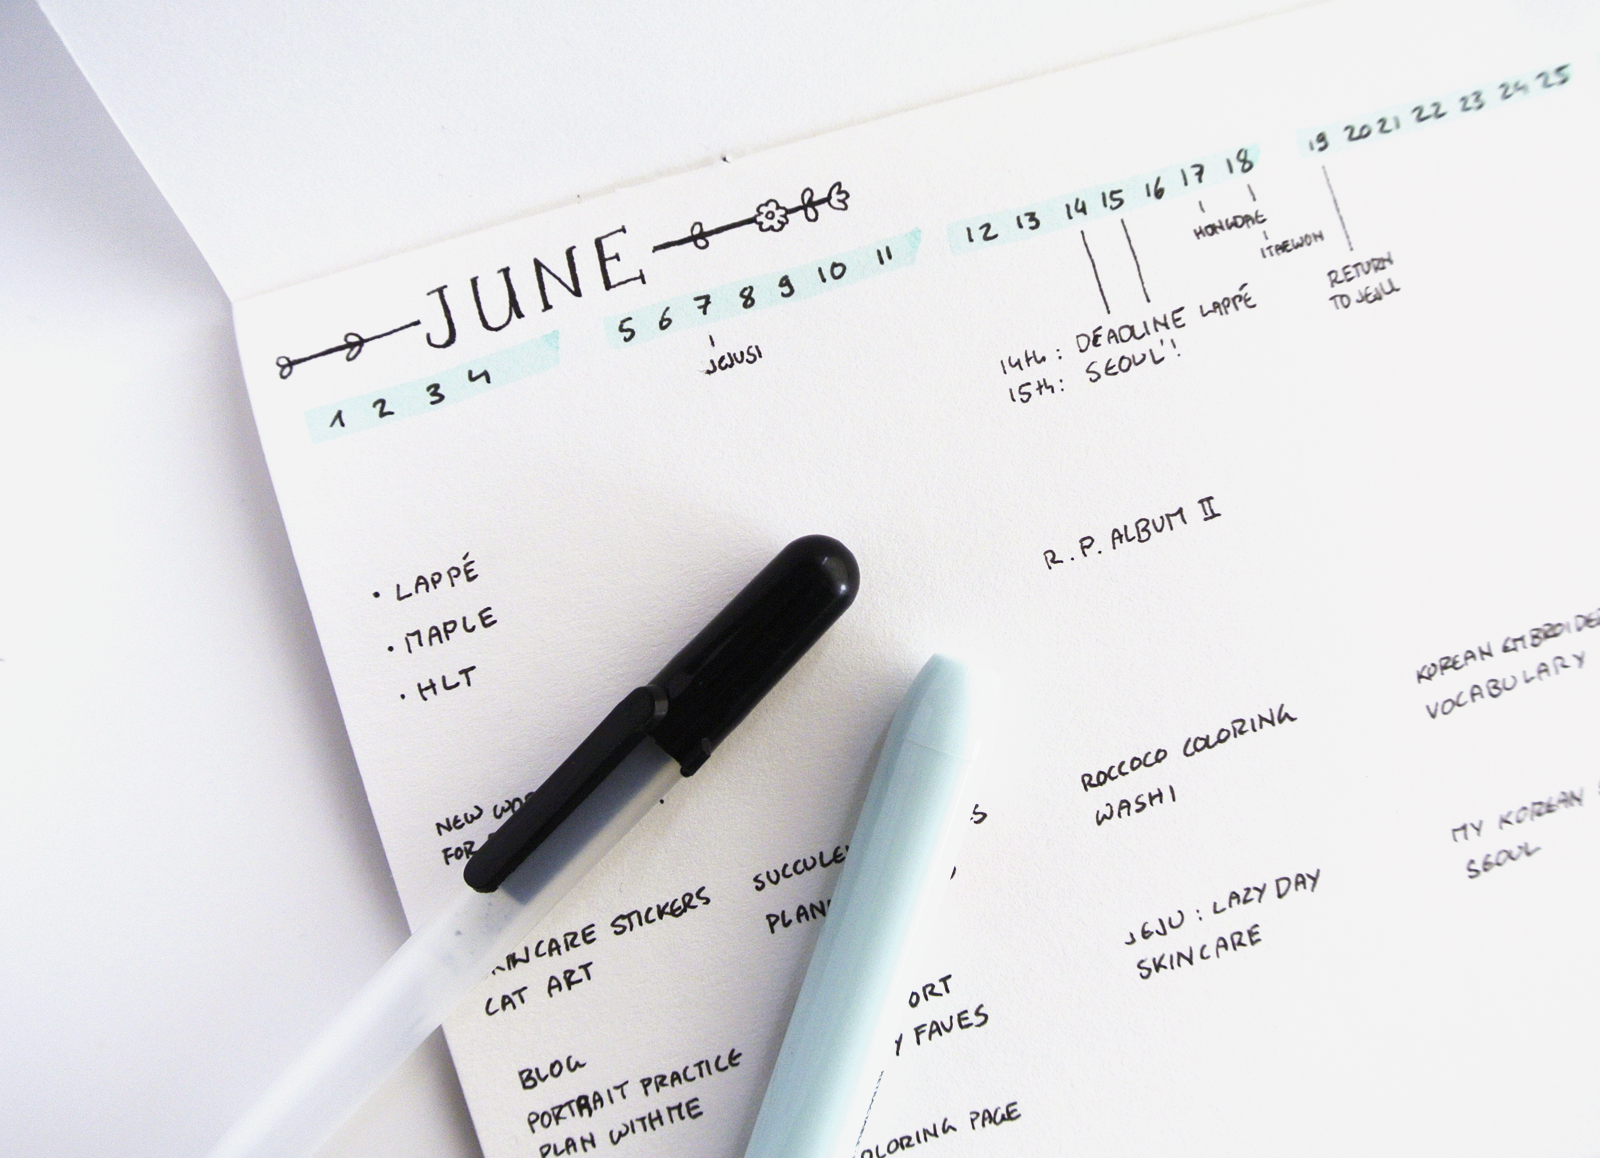 My plans for June for blogging, Etsy products, commission illustrations, freelancing... Head over to my blog to get my income report from May, my blog statistics, social media growth and lessons learned for my creative business.